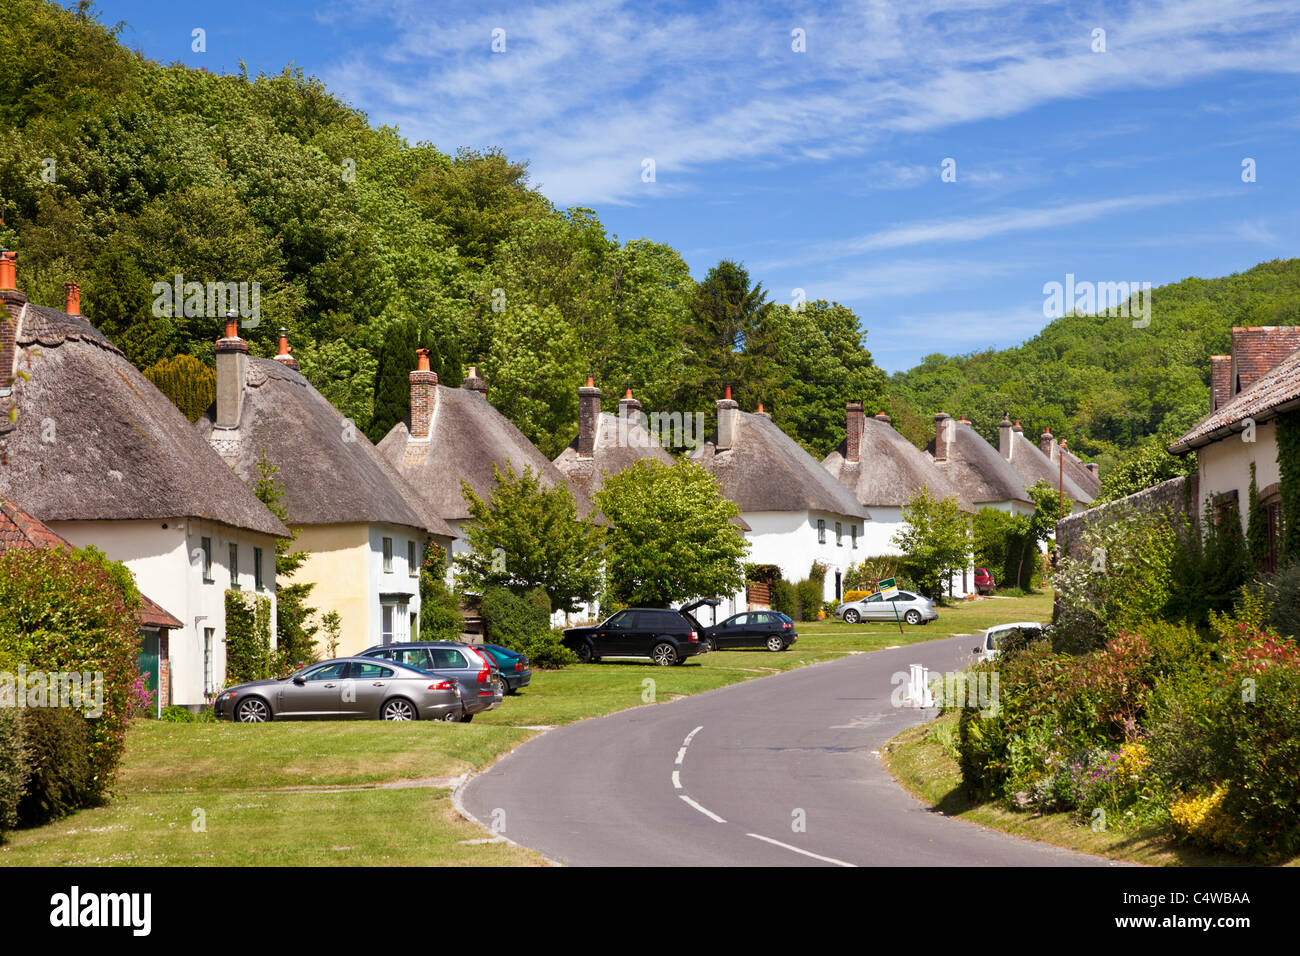 Beautiful old village uk milton abbas village in dorset england uk with traditional english thatched houses lining the street